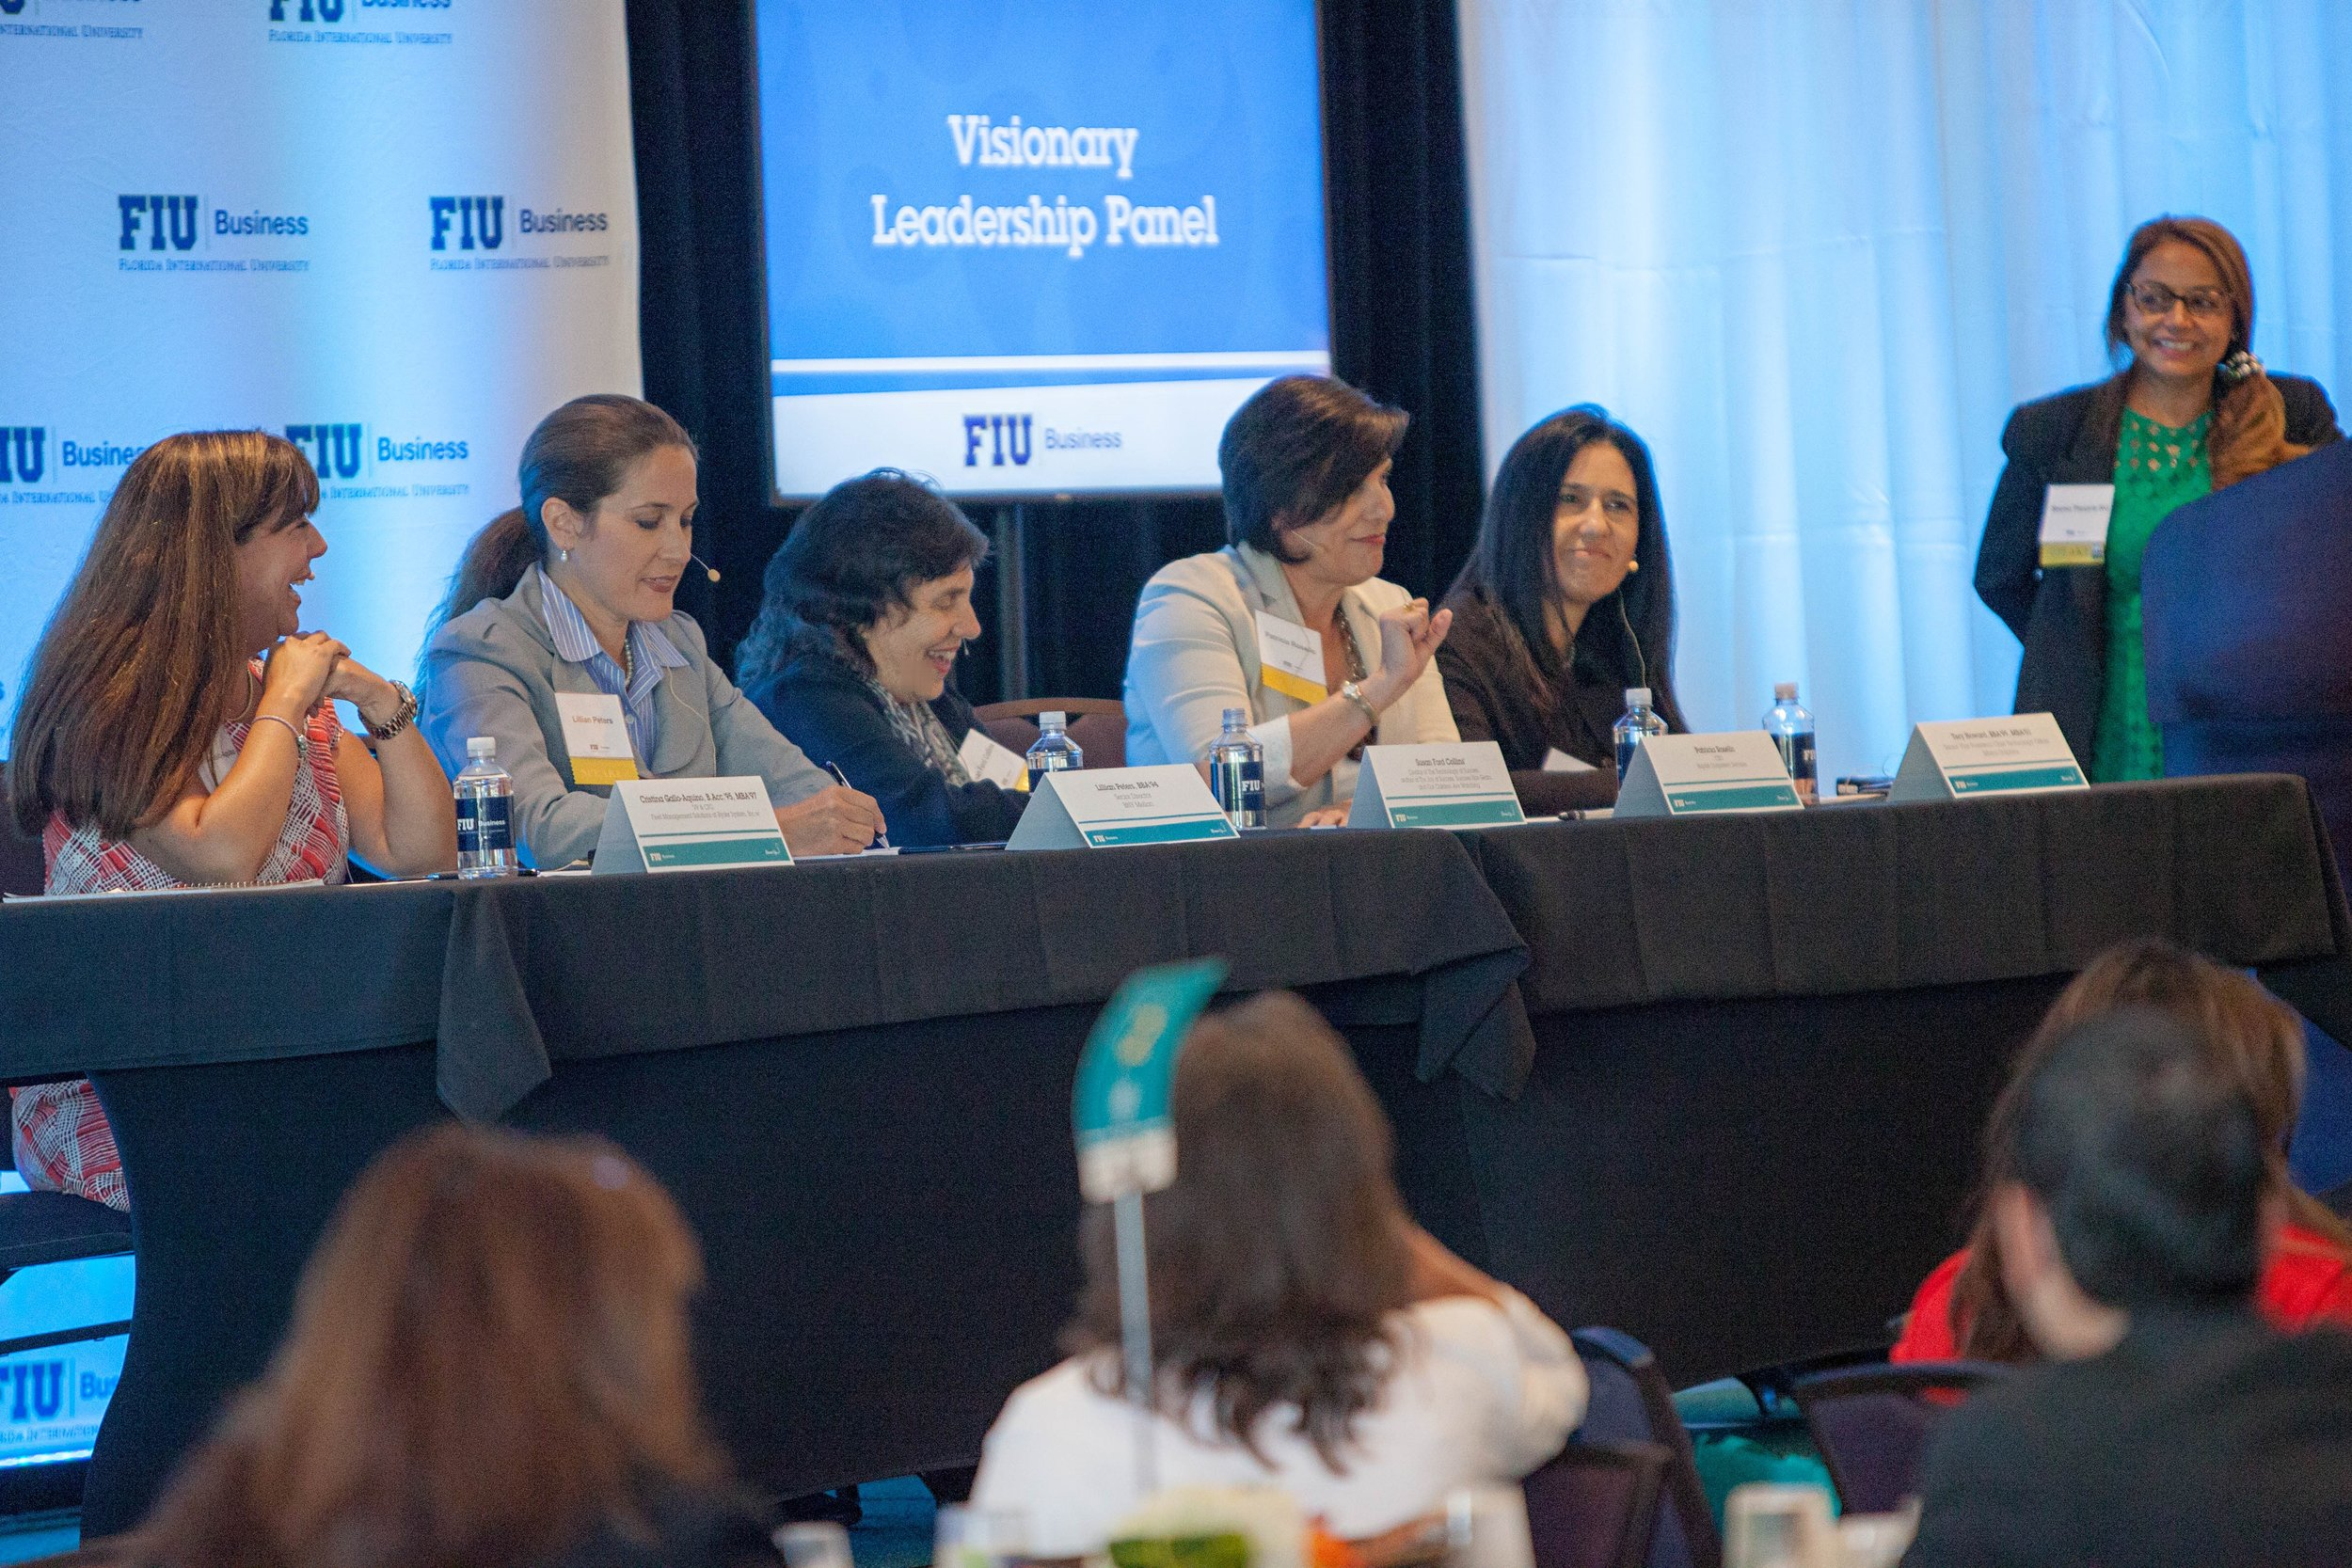 Copy of Copy of Visionary Leadership Panel FIU PowerUp Leadership Conference 2016